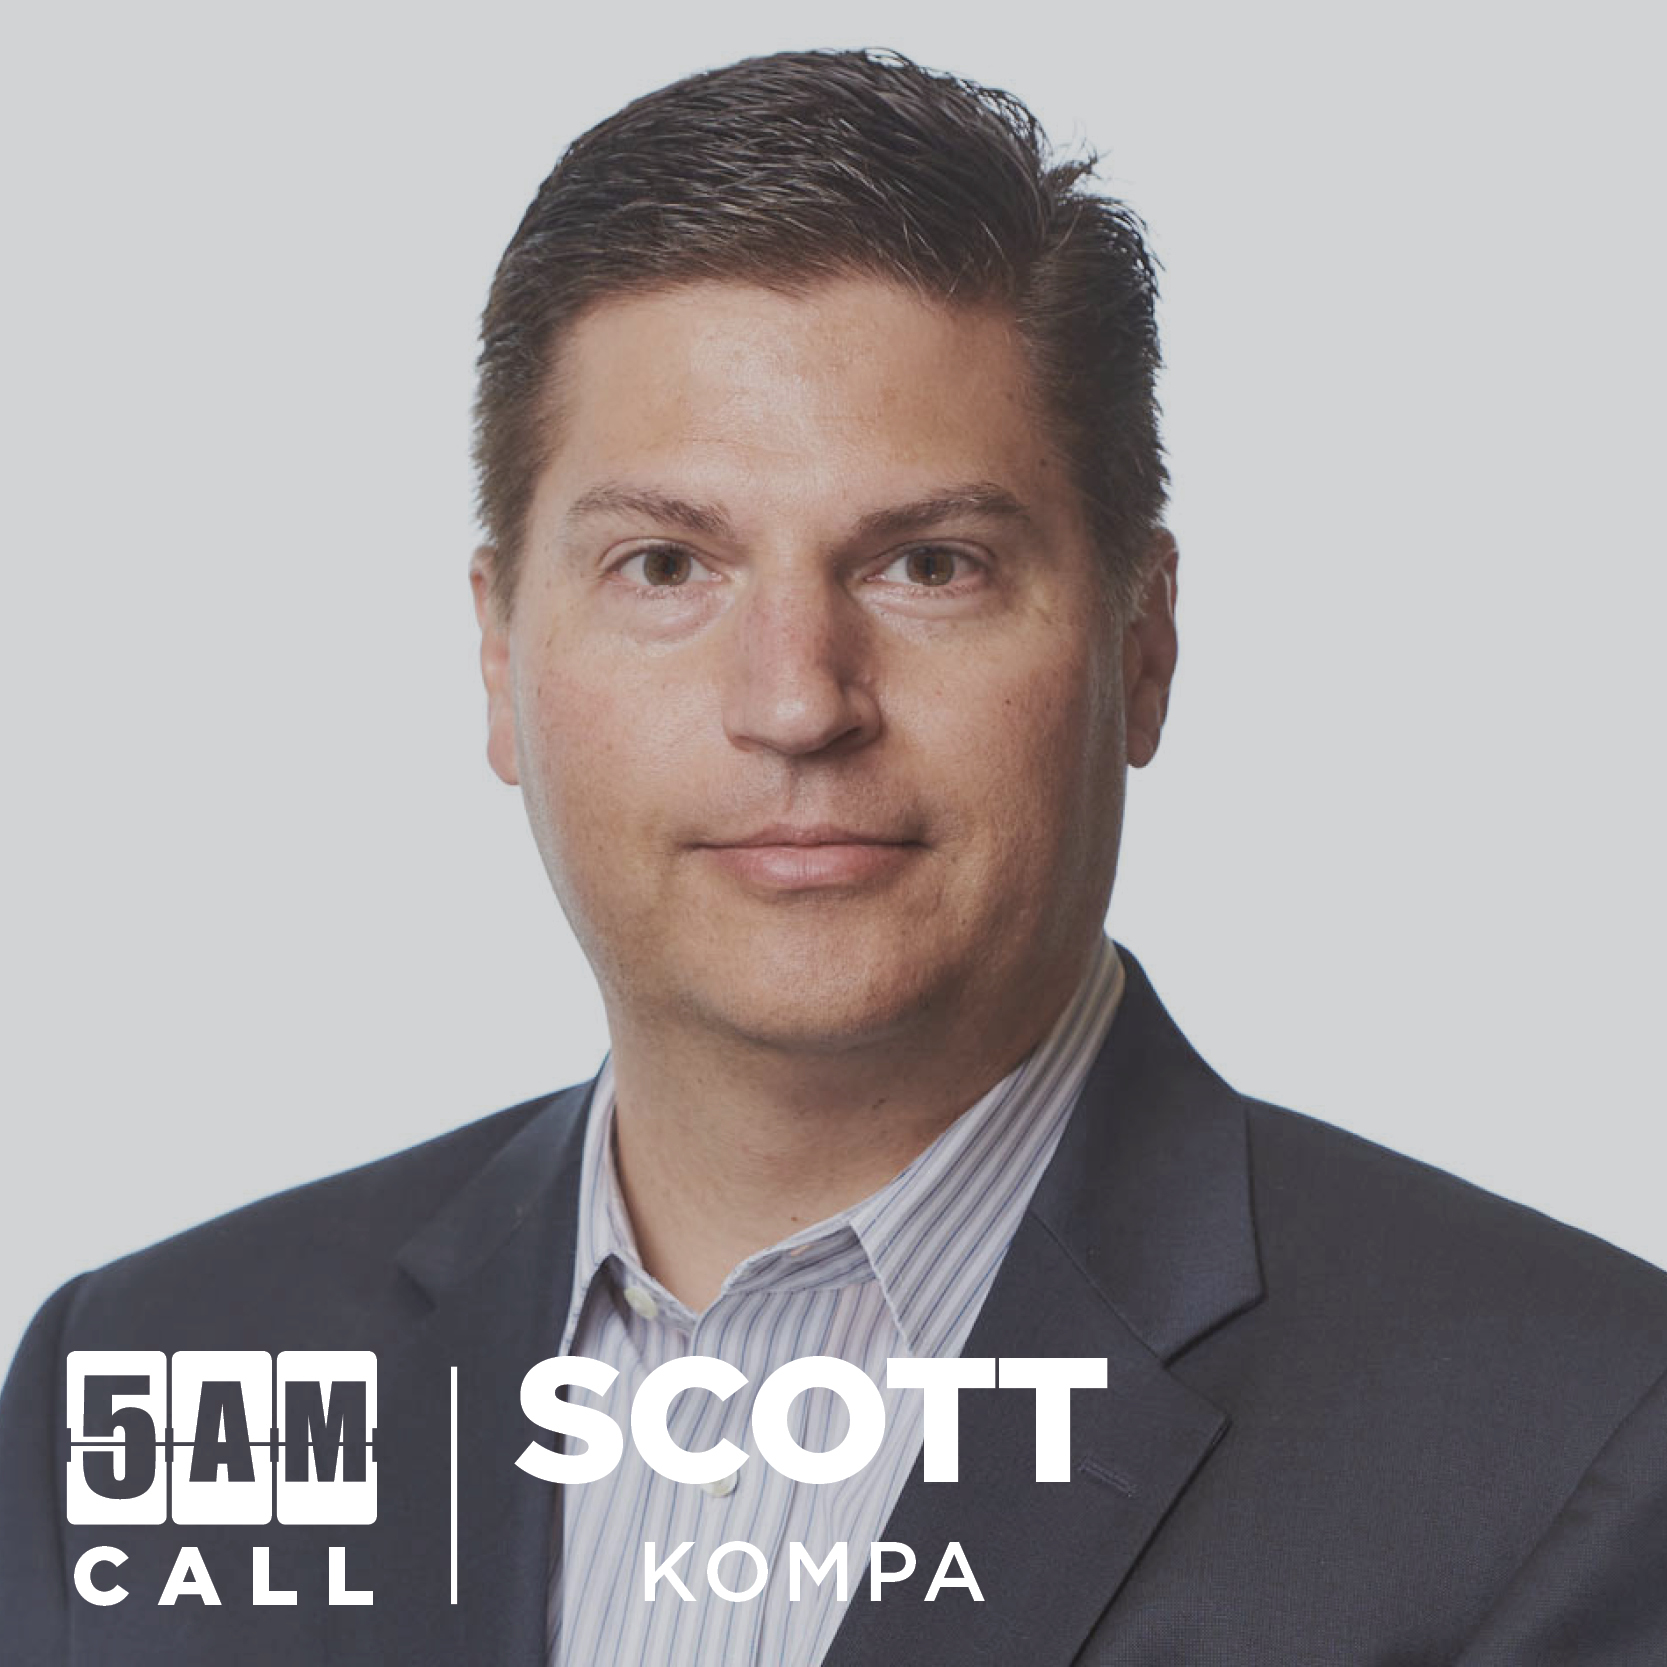 Scott leads the Scott Kompa Real Estate Group, a preferred RE/MAX team in South Jersey. Scott Kompa specializes in being the top agent, neighborhood expert, and markets homes utilizing up-to-the-second technology. Scott is also our 5am dj ;) -